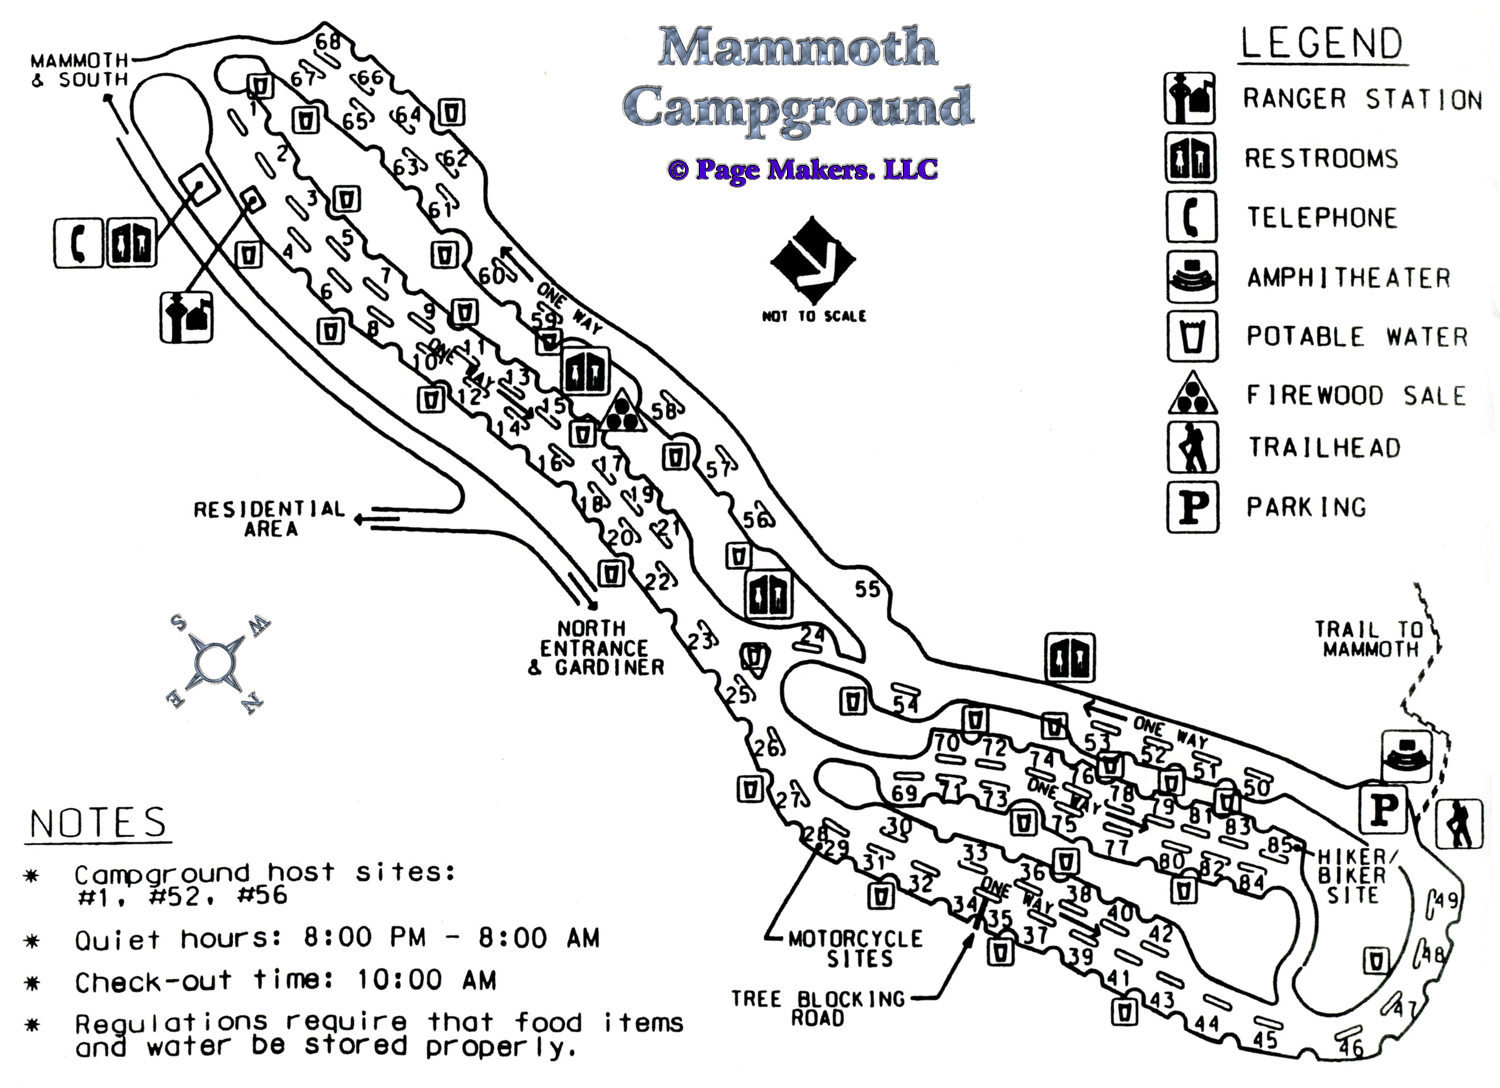 Index 2 together with Calaveras Big Trees State Park North Grove C ground furthermore 522cn5 in addition 3457 query sitedetails together with Mammothcg. on camping toilet